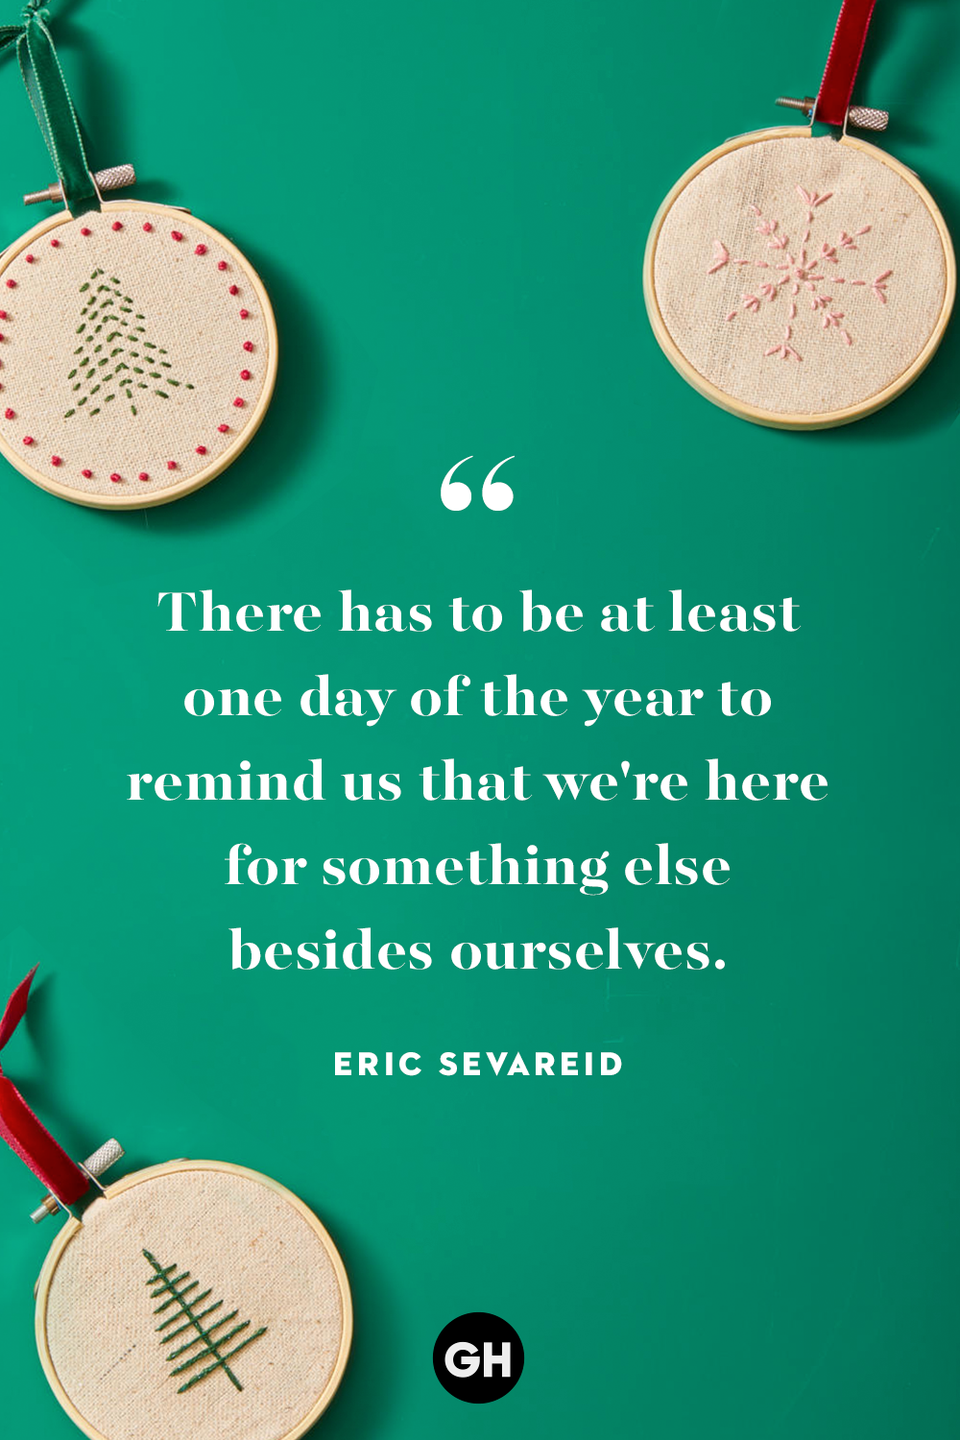 <p>There has to be at least one day of the year to remind us that we're here for something else besides ourselves.</p>